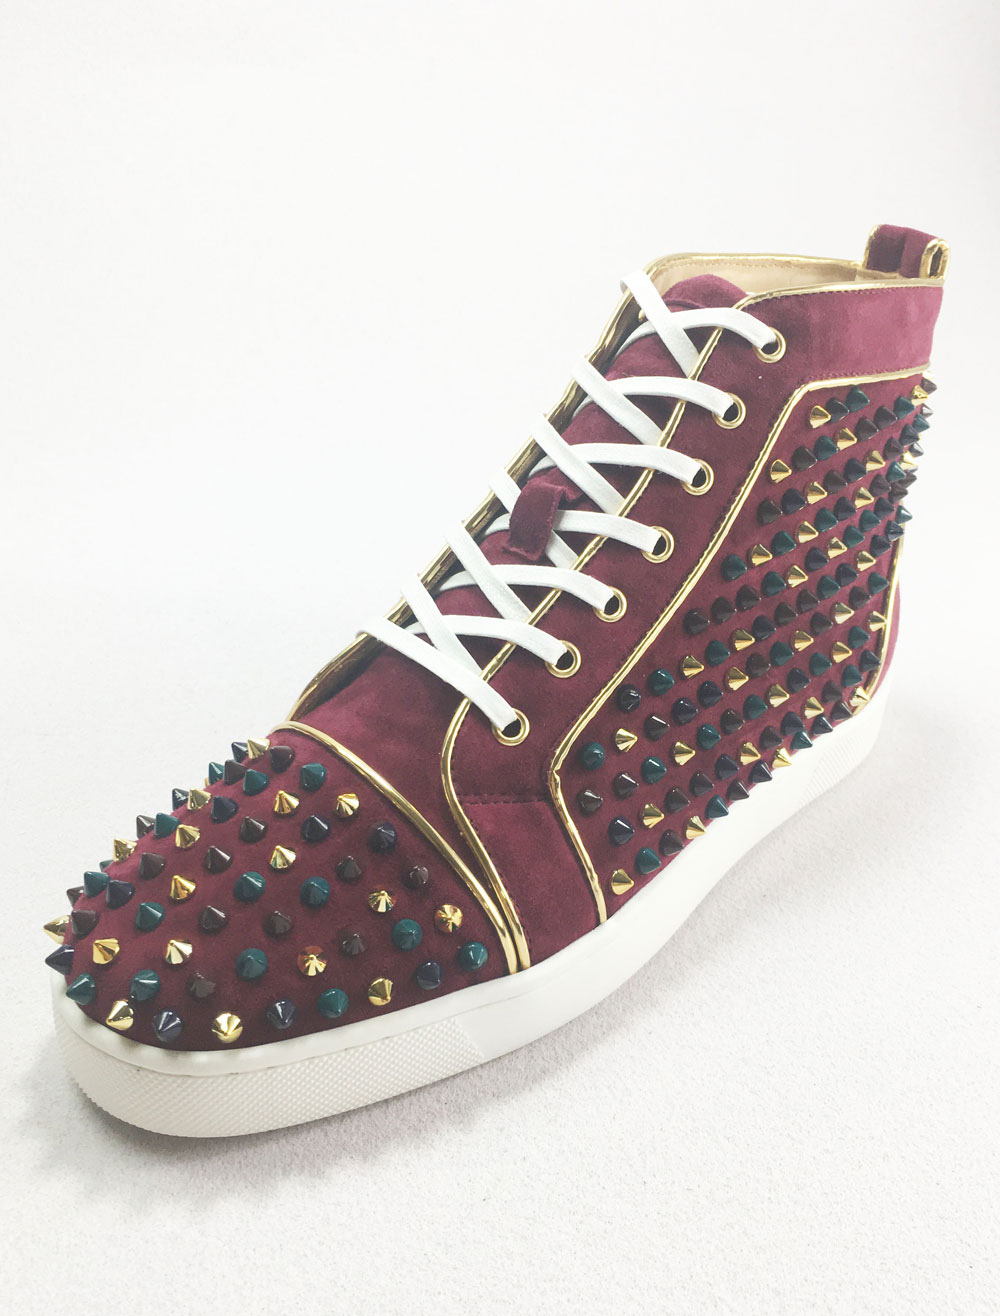 High Top Sneakers Leather Burgundy Round Toe Lace Up Rivets Spike Shoes thumbnail